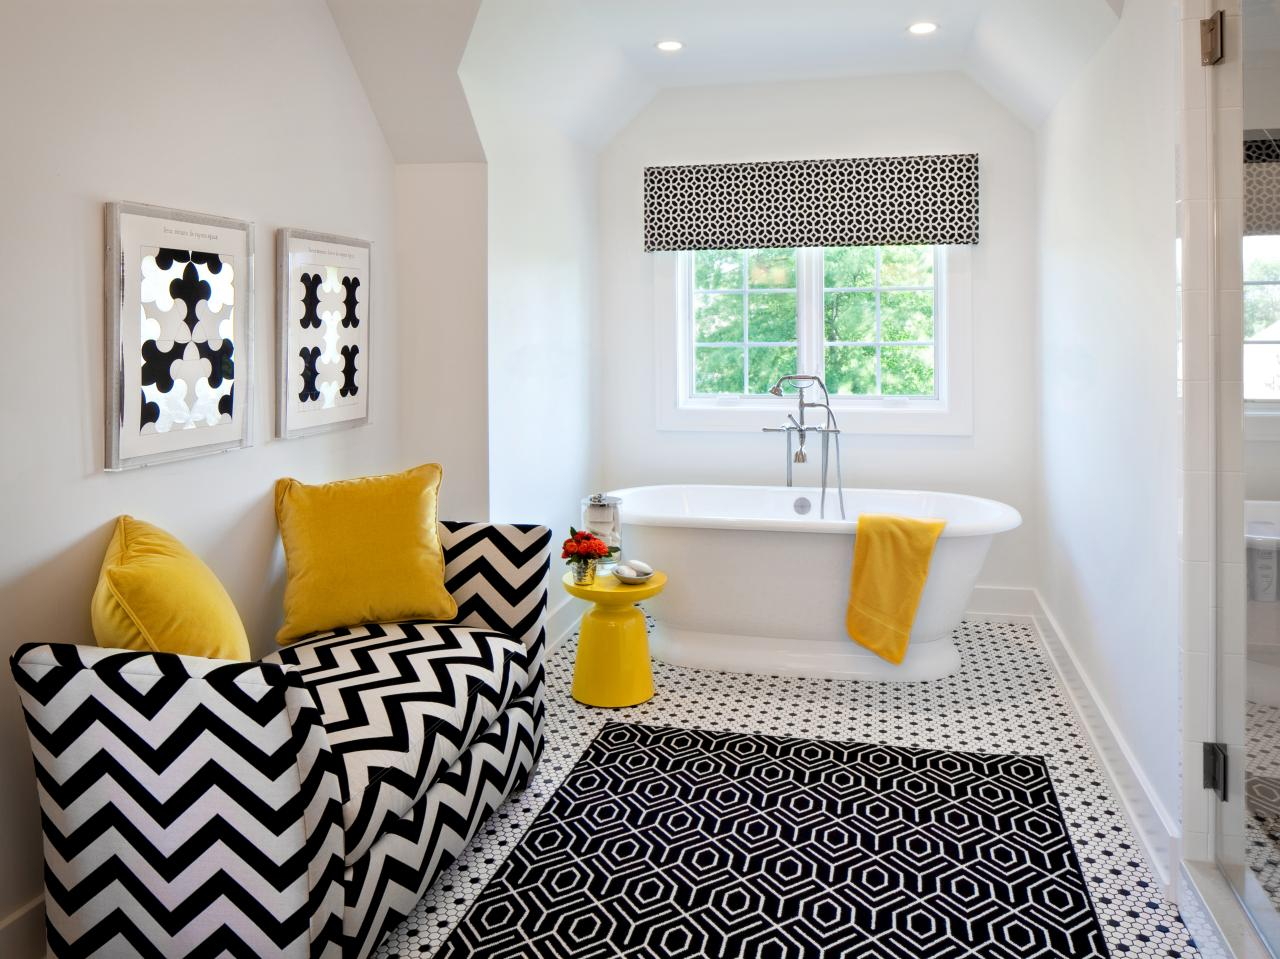 Black and White Bathroom Decor Ideas. Black and White Bathroom Decor Ideas   HGTV Pictures   HGTV